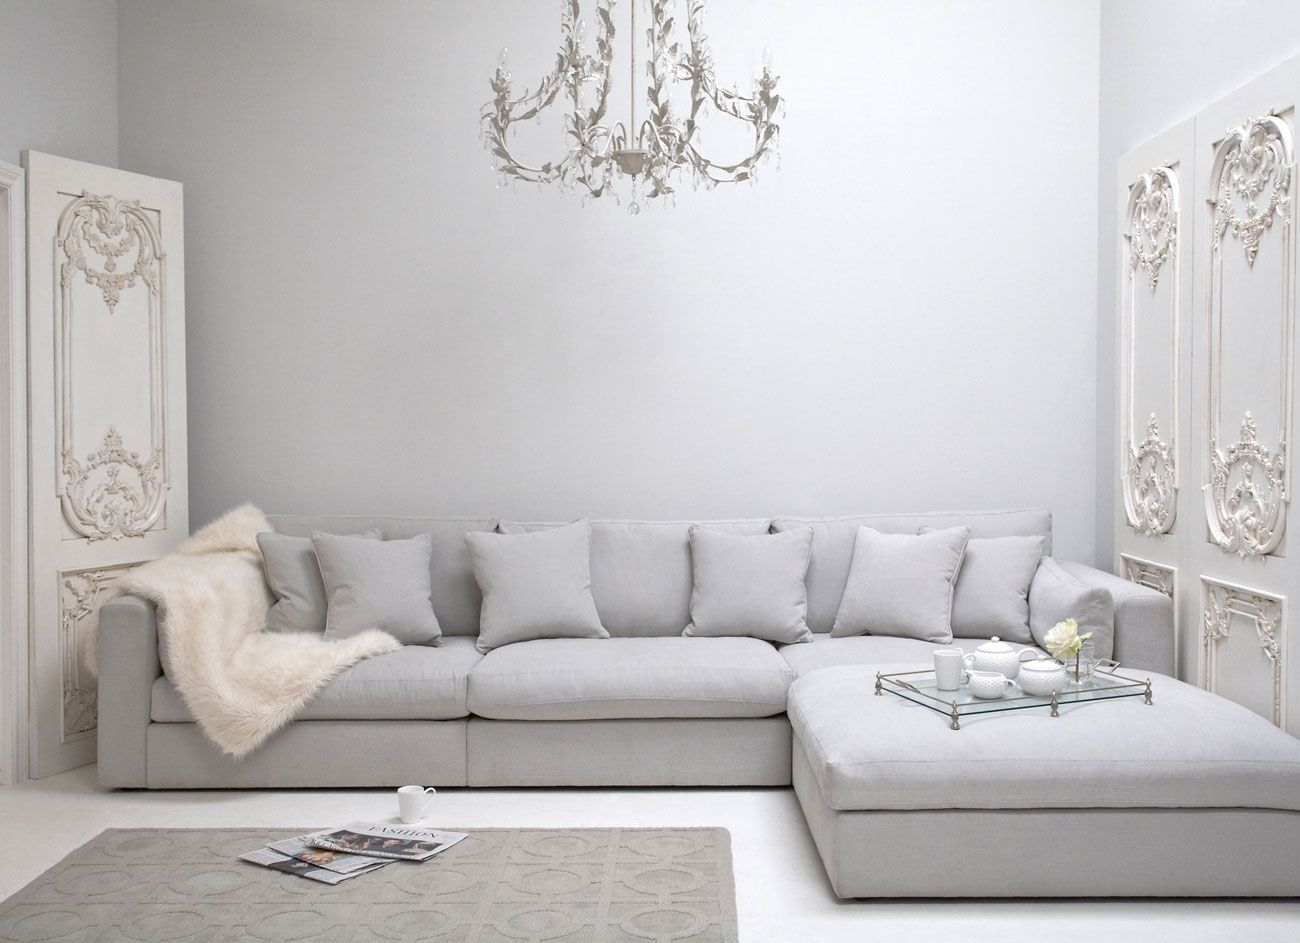 Best 25+ Grey corner sofa ideas only on Pinterest | White corner ...